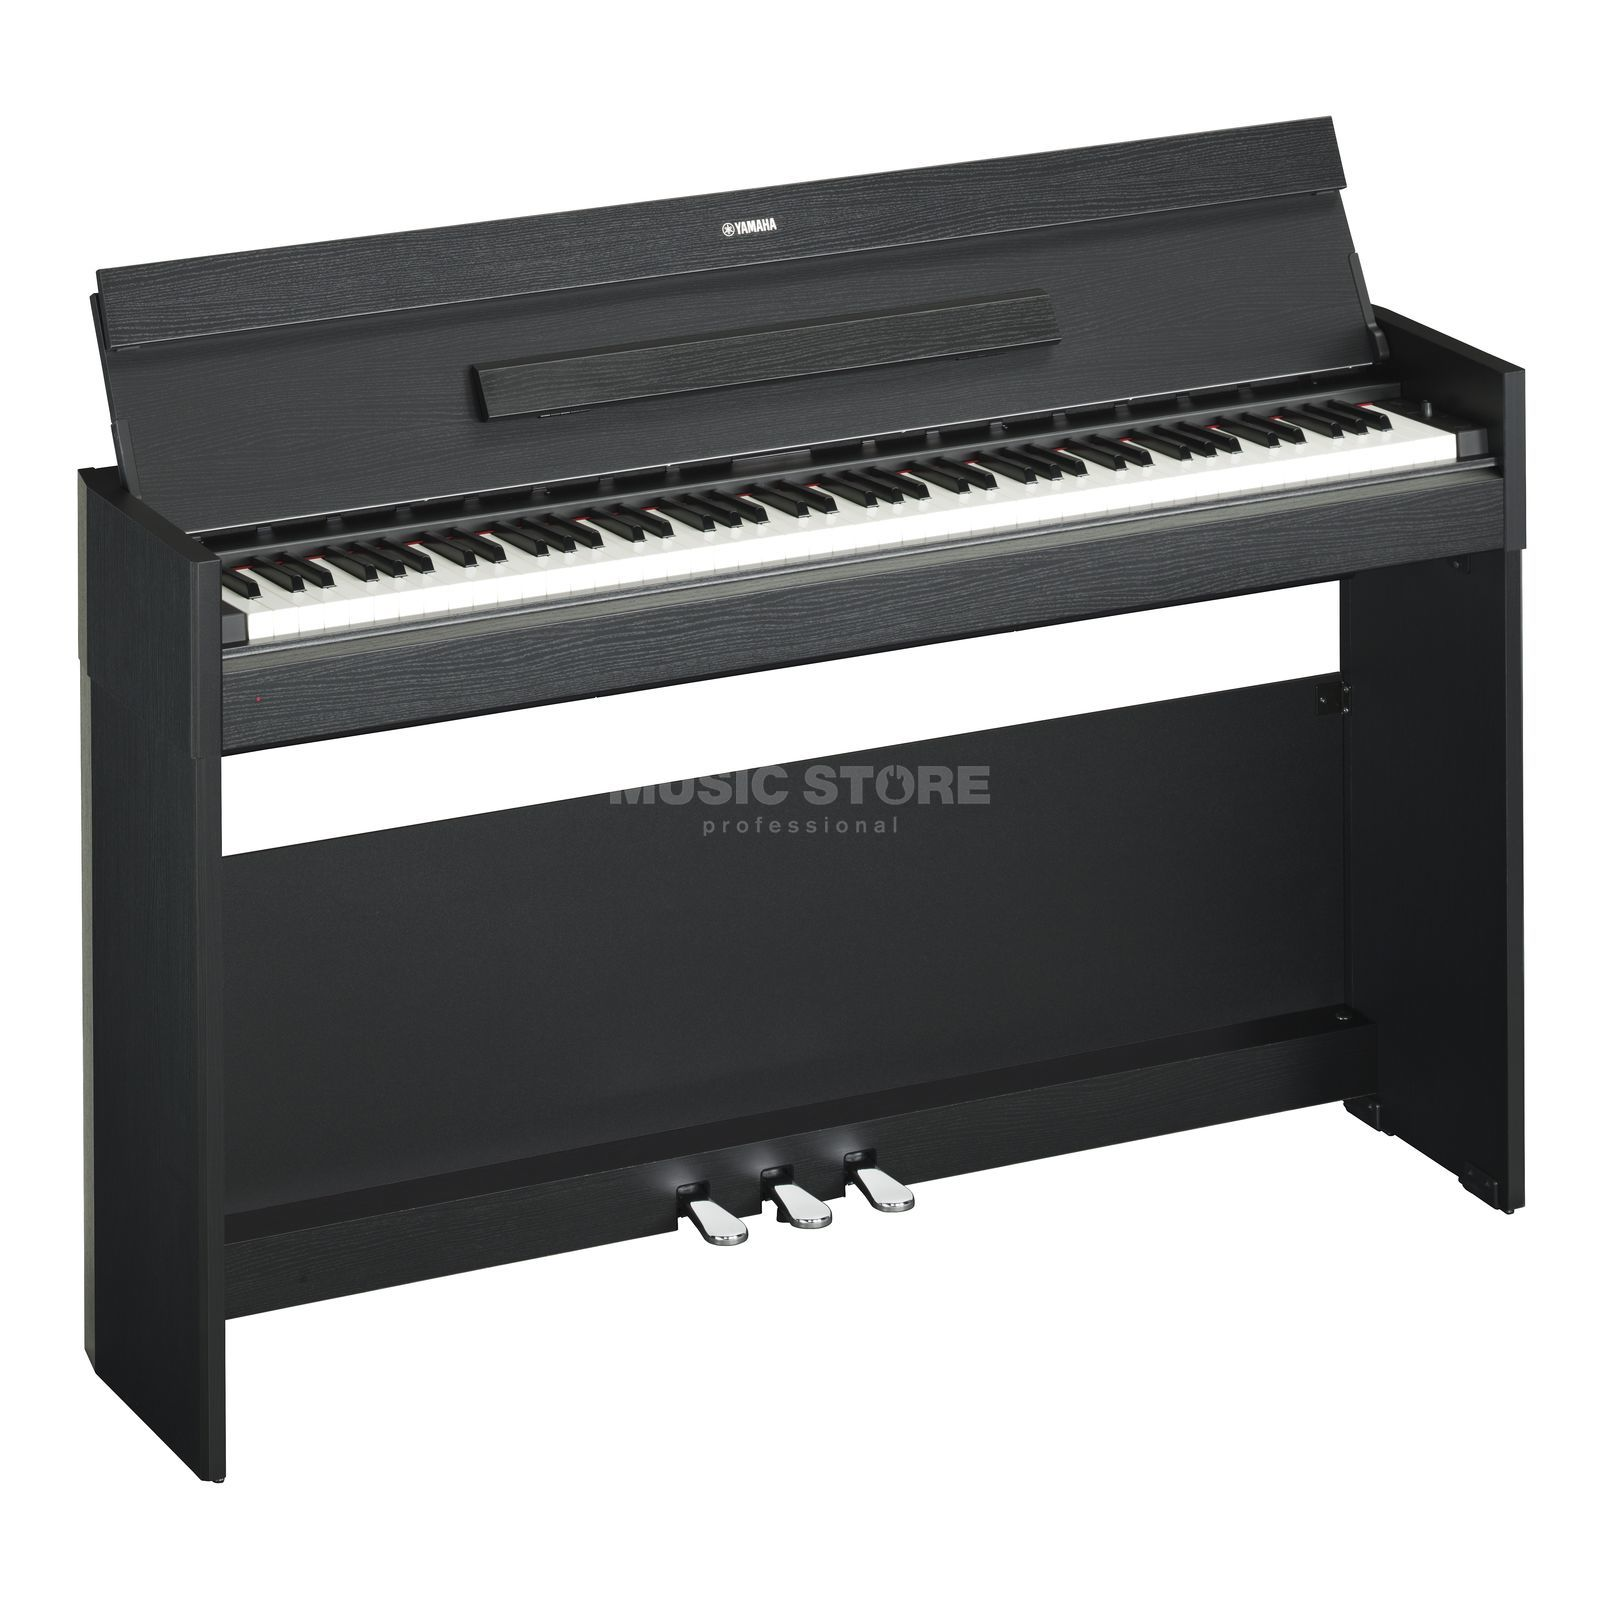 Yamaha YDP-S52 B Digital Piano Black Produktbild